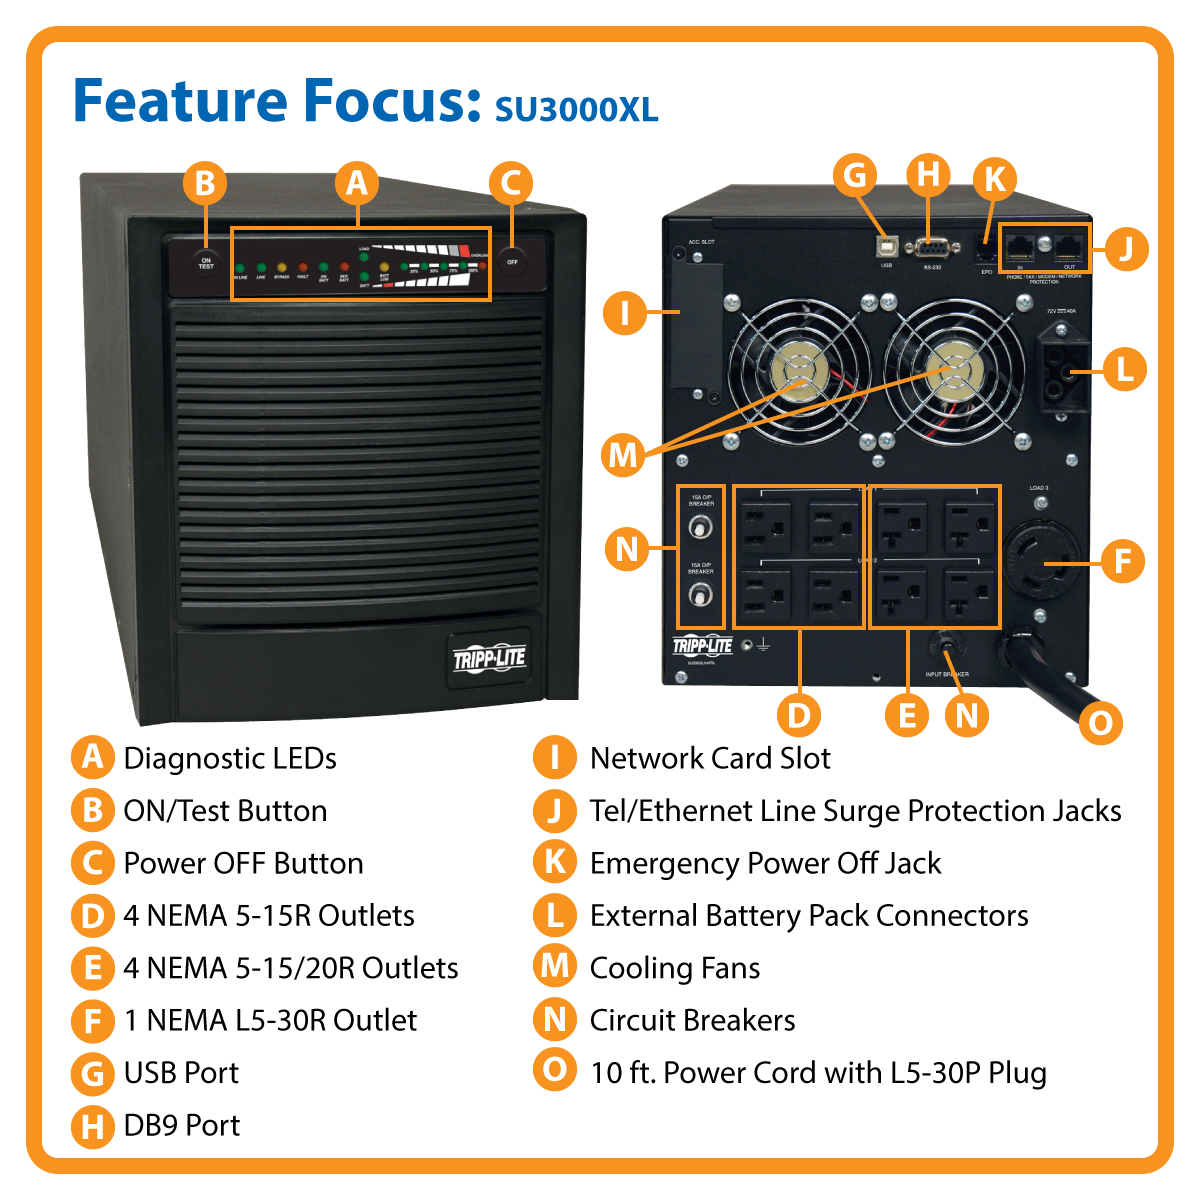 slide 1 of 6,show larger image, su3000xl smartonline® double-conversion sine wave tower ups with expandable runtime and network slot